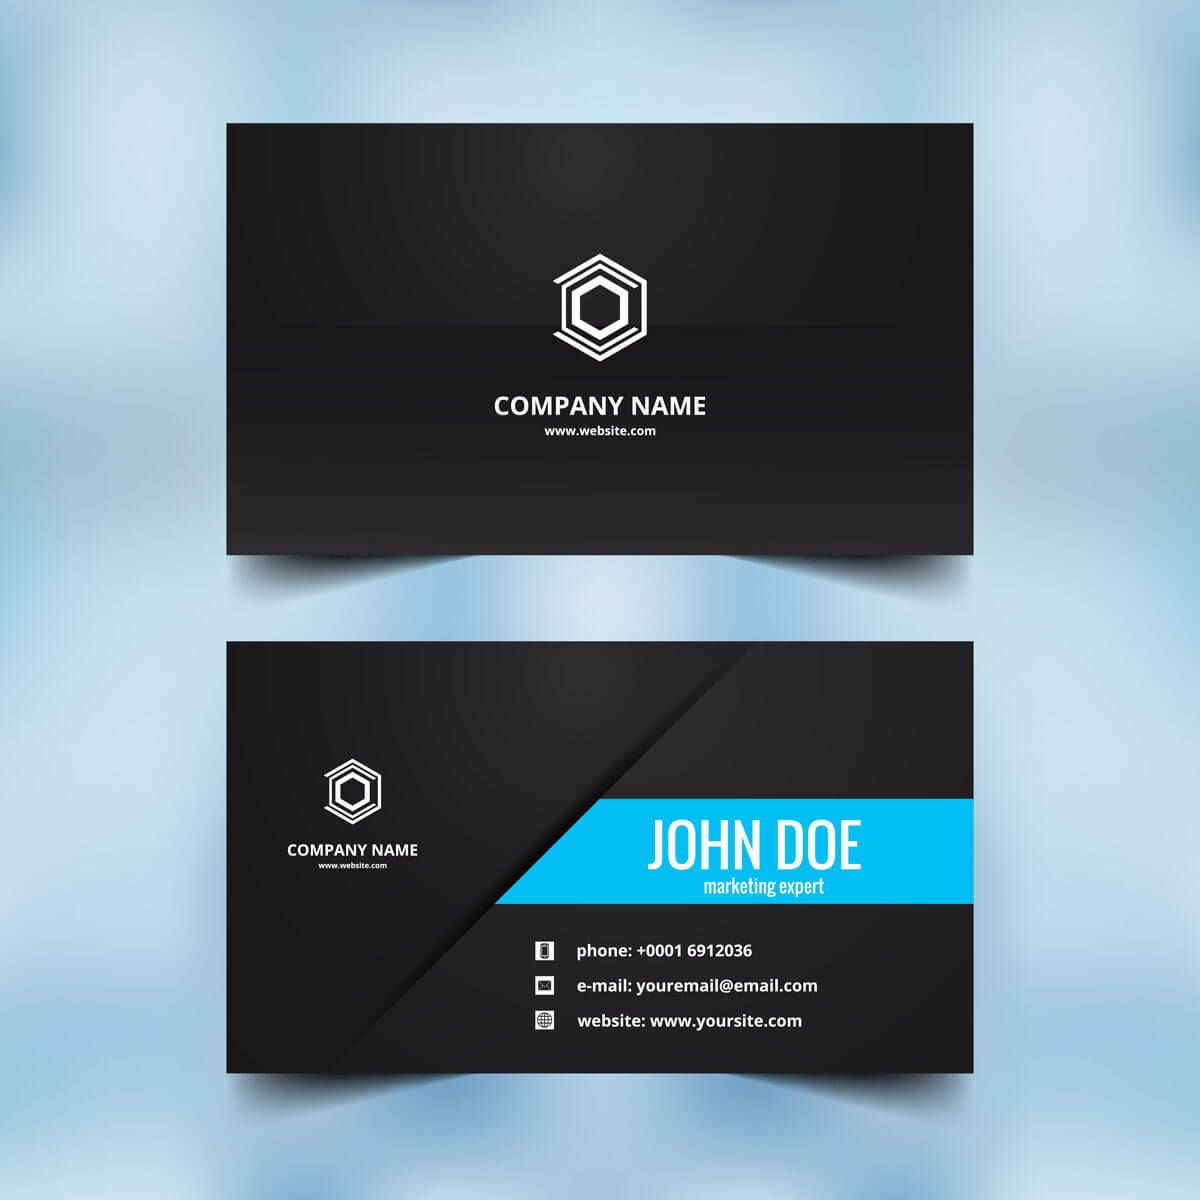 Business Card Sample Design Http://49designers.com/portfolio/2/1